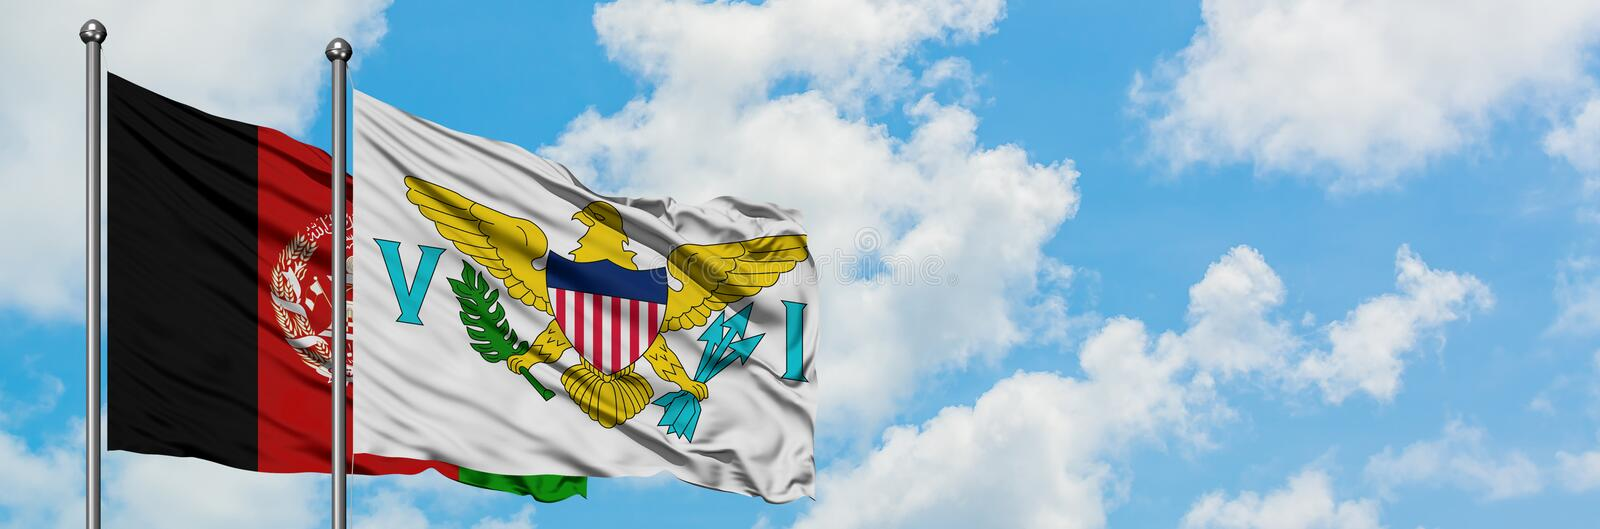 Afghanistan and United States Virgin Islands flag waving in the wind against white cloudy blue sky together. Diplomacy concept,. International relations stock photos